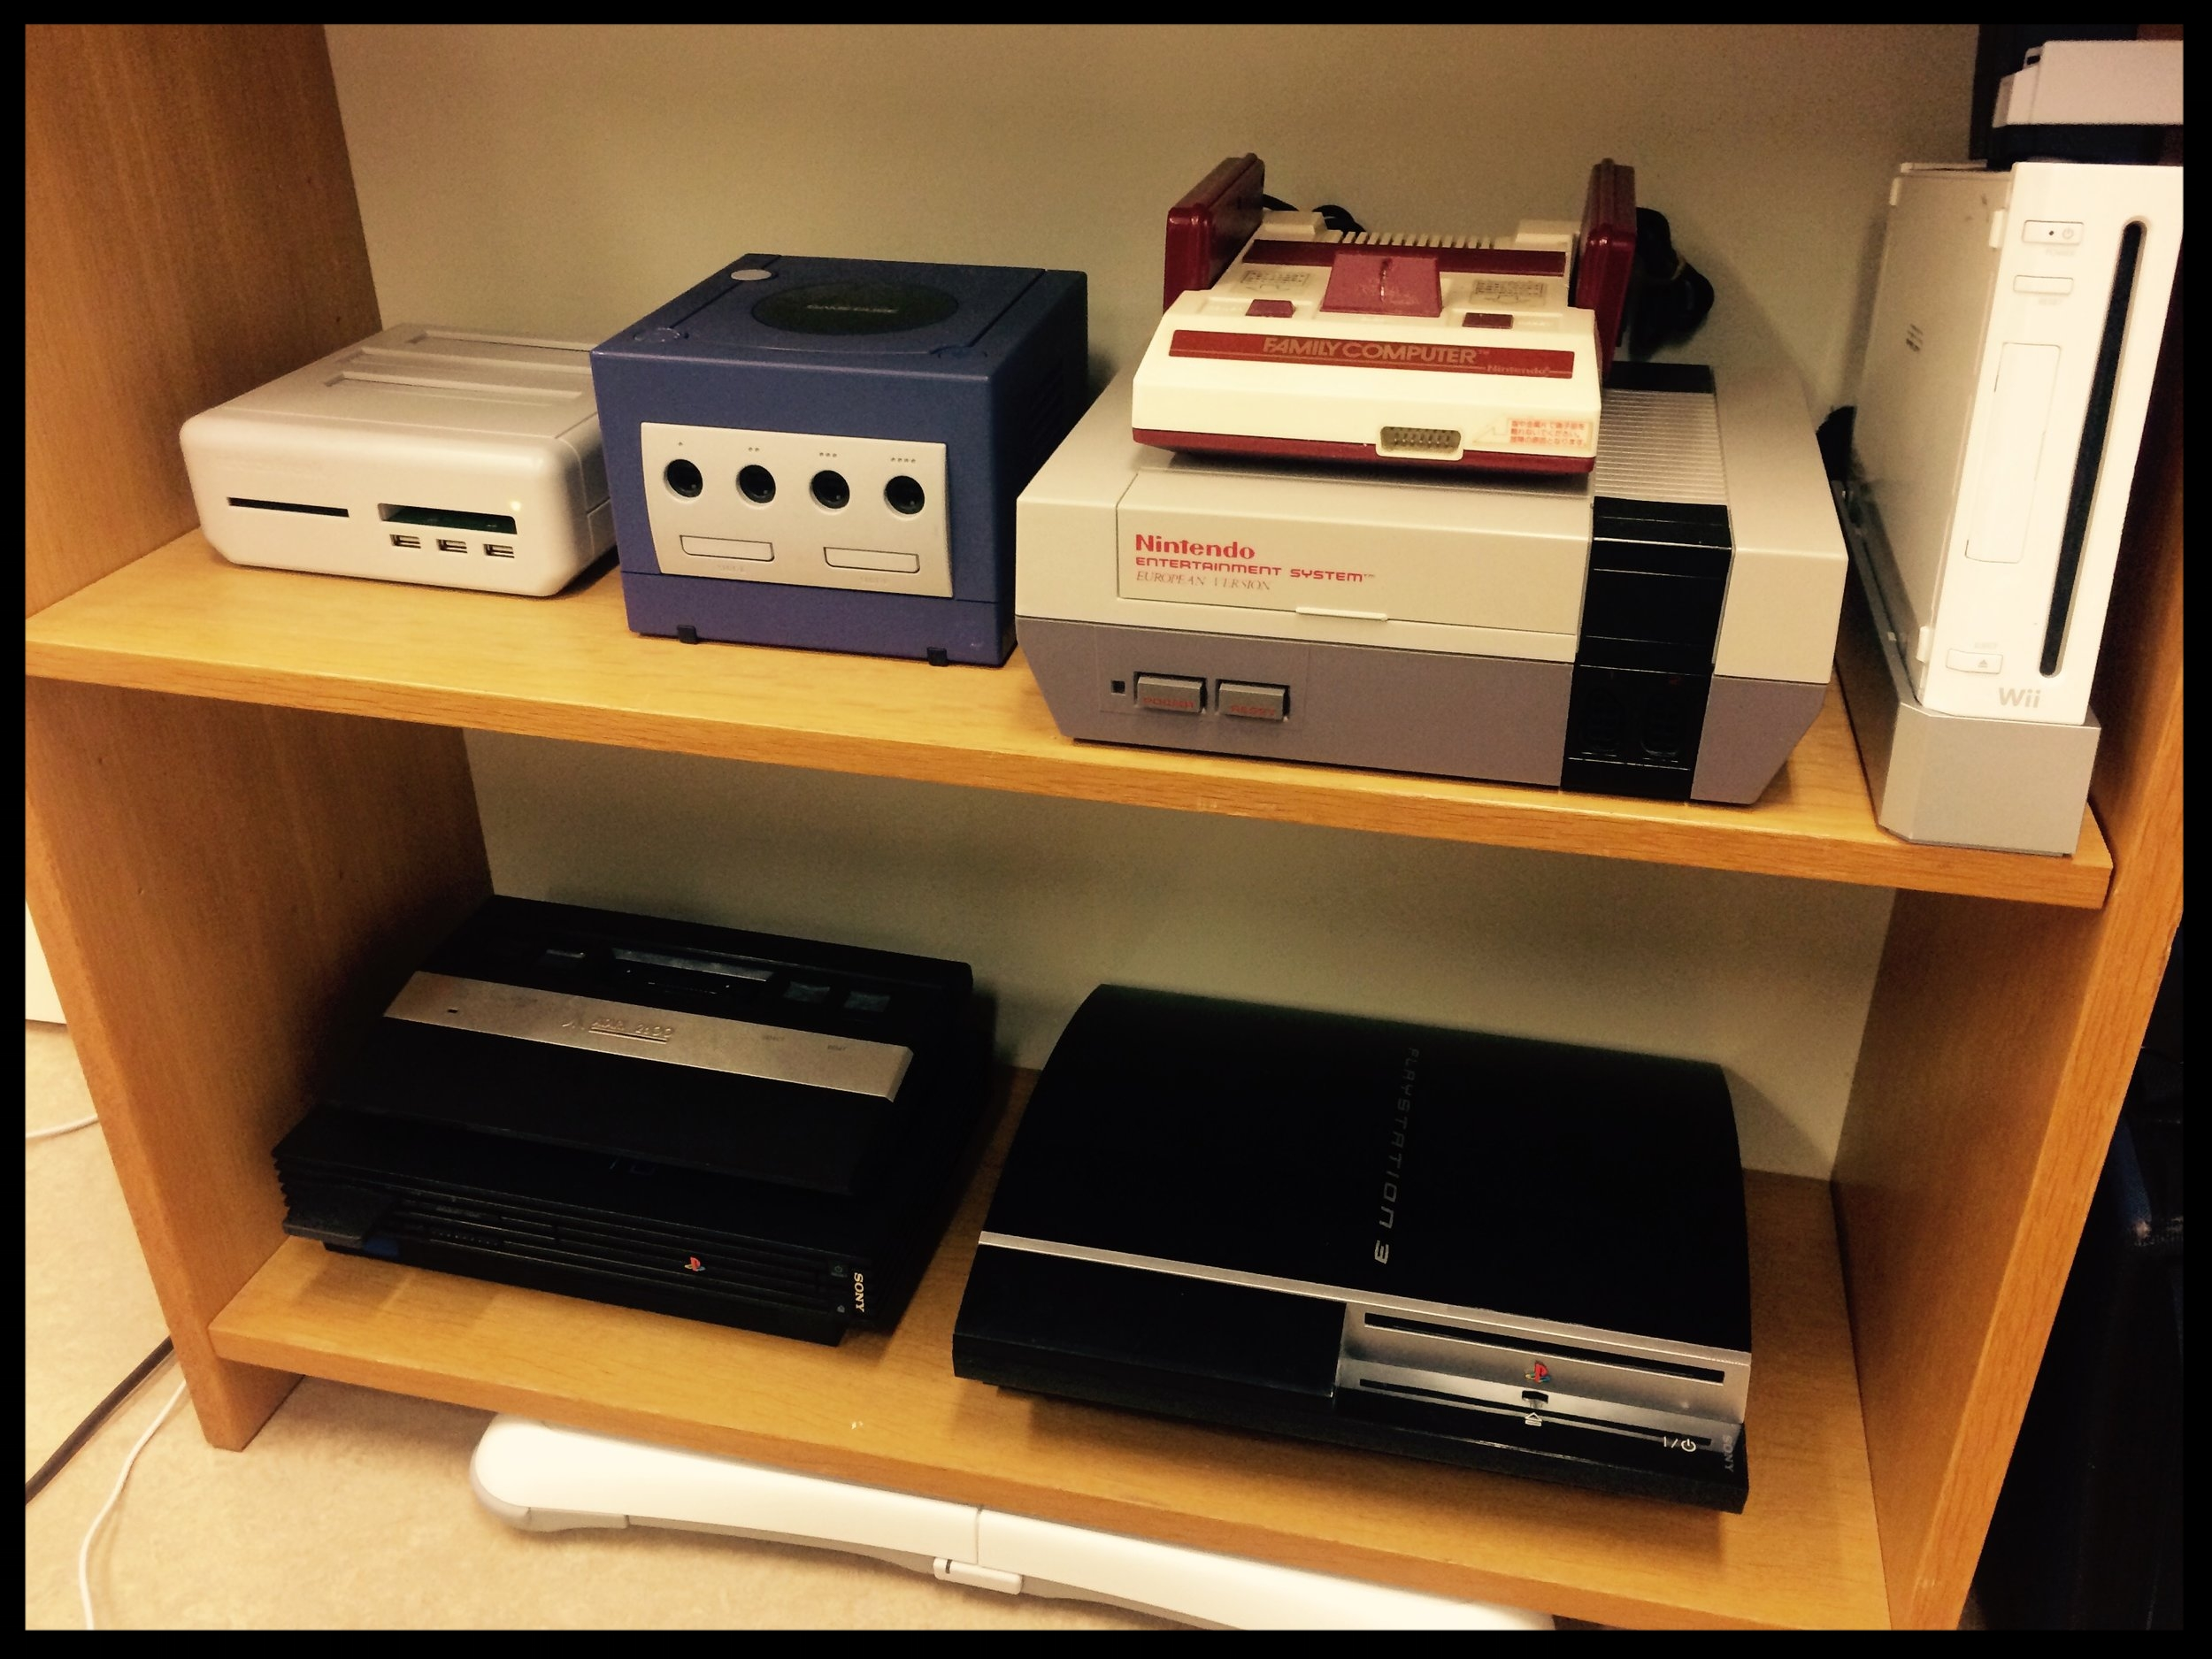 RetroFreak Multi-Console, Nintendo Gamecube, Nintendo Famicom, Nintendo Entertainment System, Nintendo Wii, Atari 2600, Sony PS2 and Sony PS3.